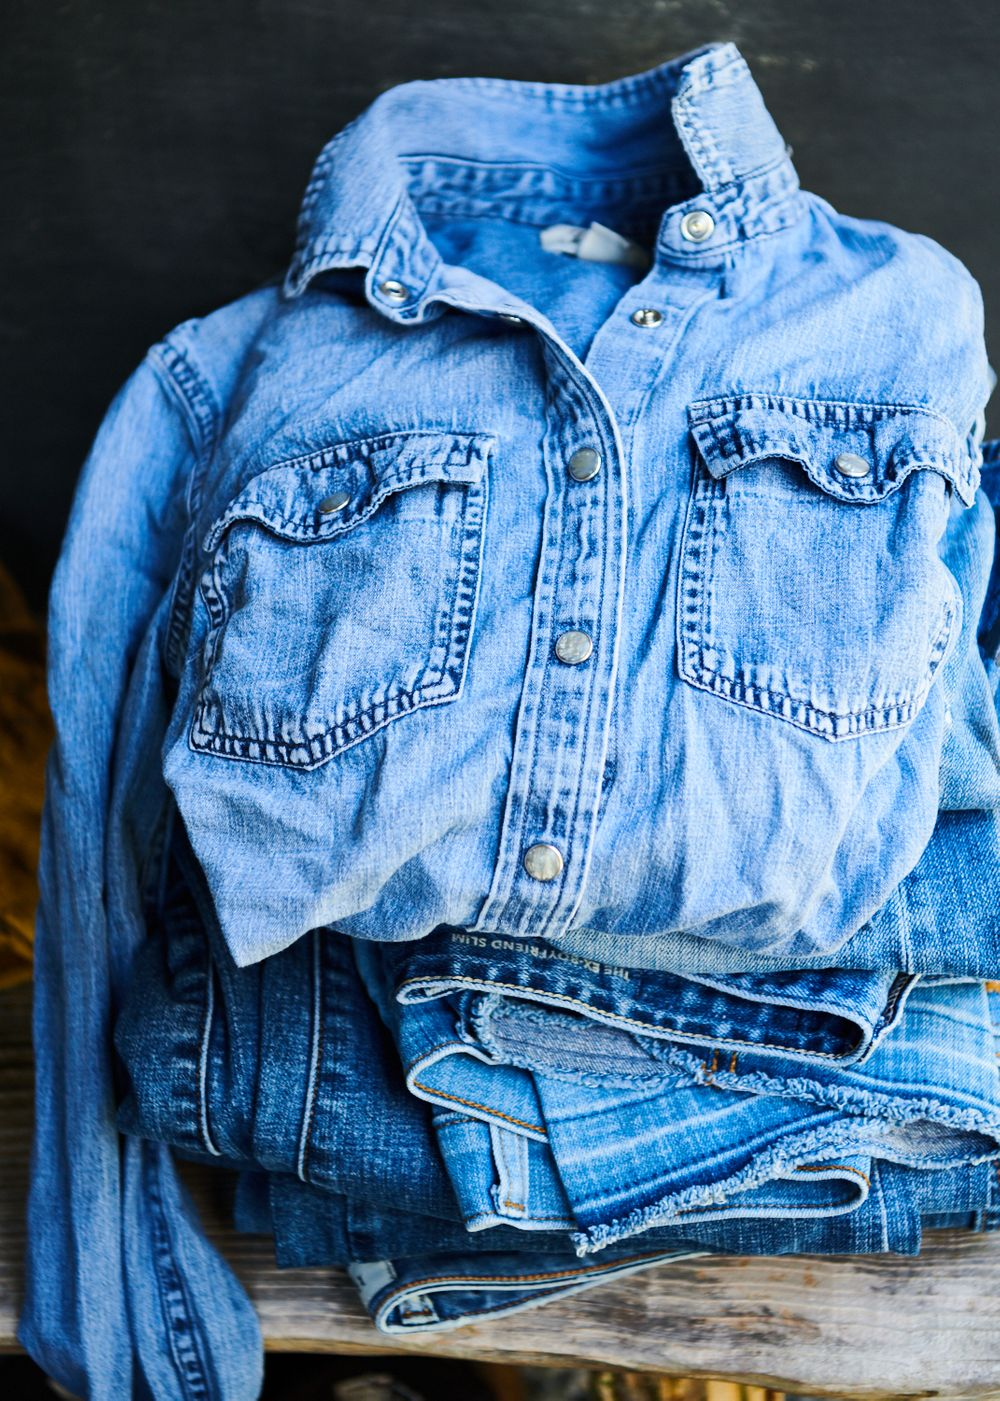 Denim shirt jacket and jeans